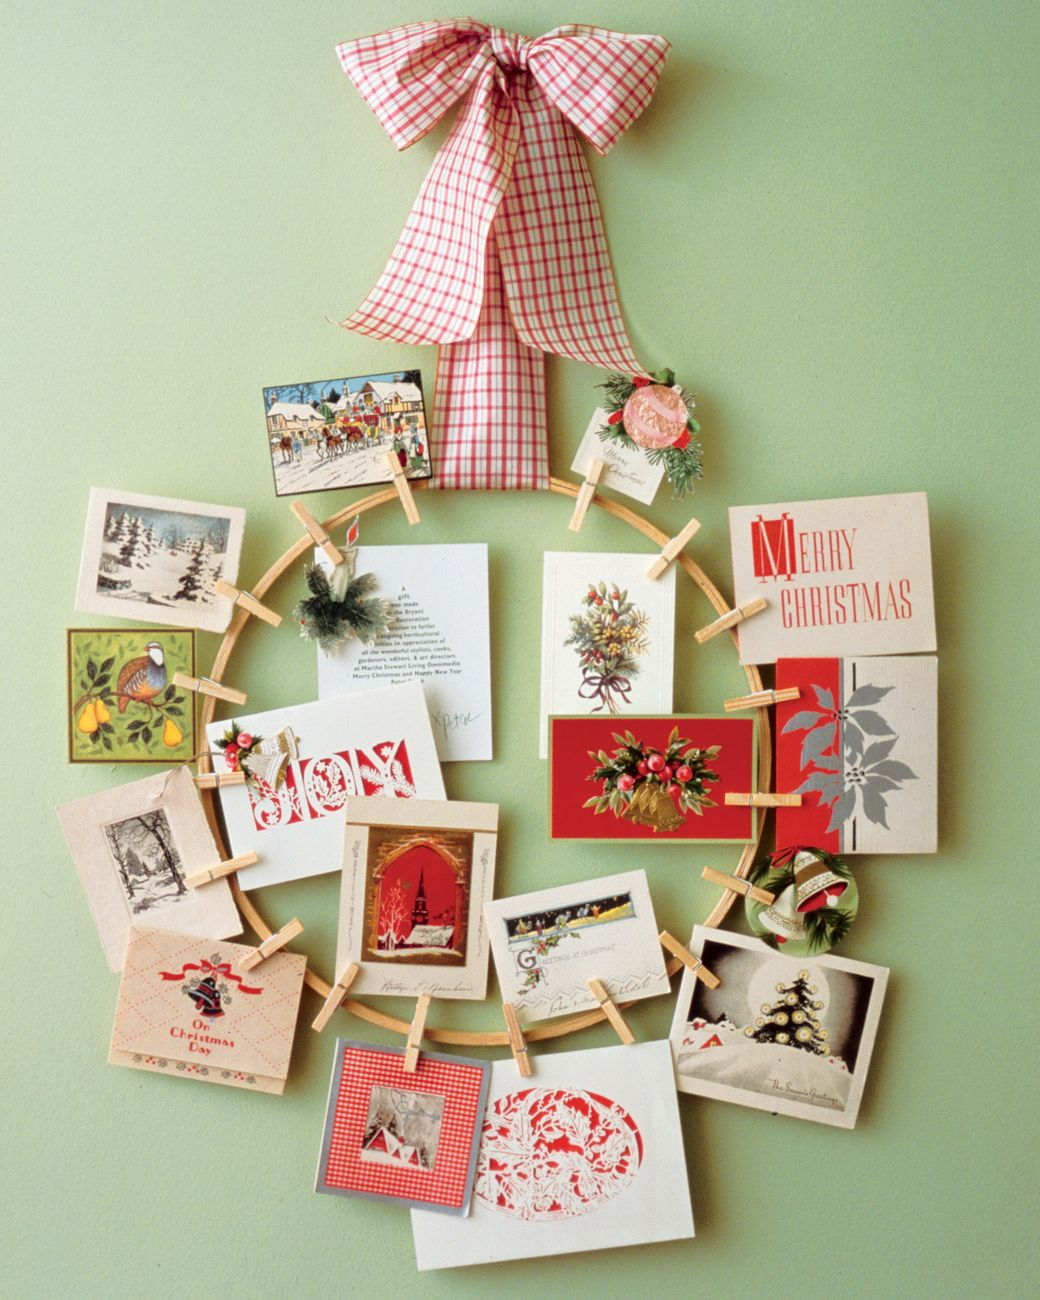 Looking to craft something special for the Christmas season but don't have that much time? Here, we offer up Christmas crafts that require only a few on-hand materials and take just minutes to make -- perfect for both you and the kids.